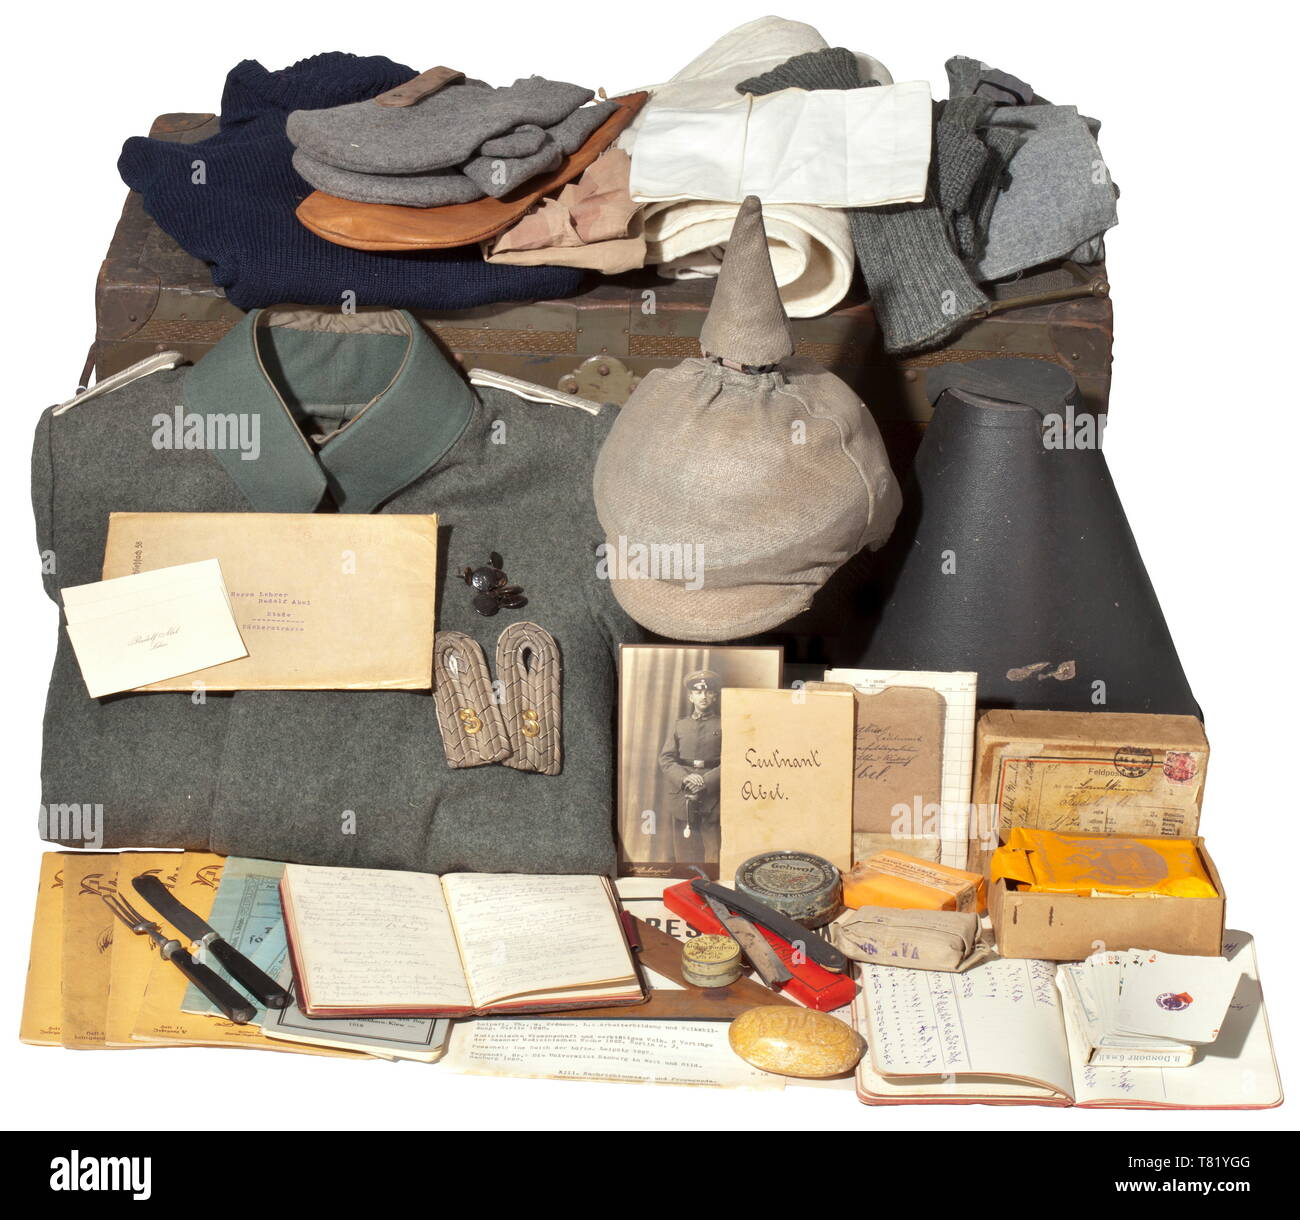 The large estate of uniforms and documents from the possessions of Reserve Lieutenant Rudolf Abel from Stade. A Prussian field tunic M 1915 for an infantry lieutenant, made of field-grey cloth, dark green collar, covered button flap, sewn-on shoulder boards, and green lining. The tunic in perfect, unissued condition. A spiked helmet M 1915 for infantry officers, from circa 1918. Th 20th century, Additional-Rights-Clearance-Info-Not-Available - Stock Image